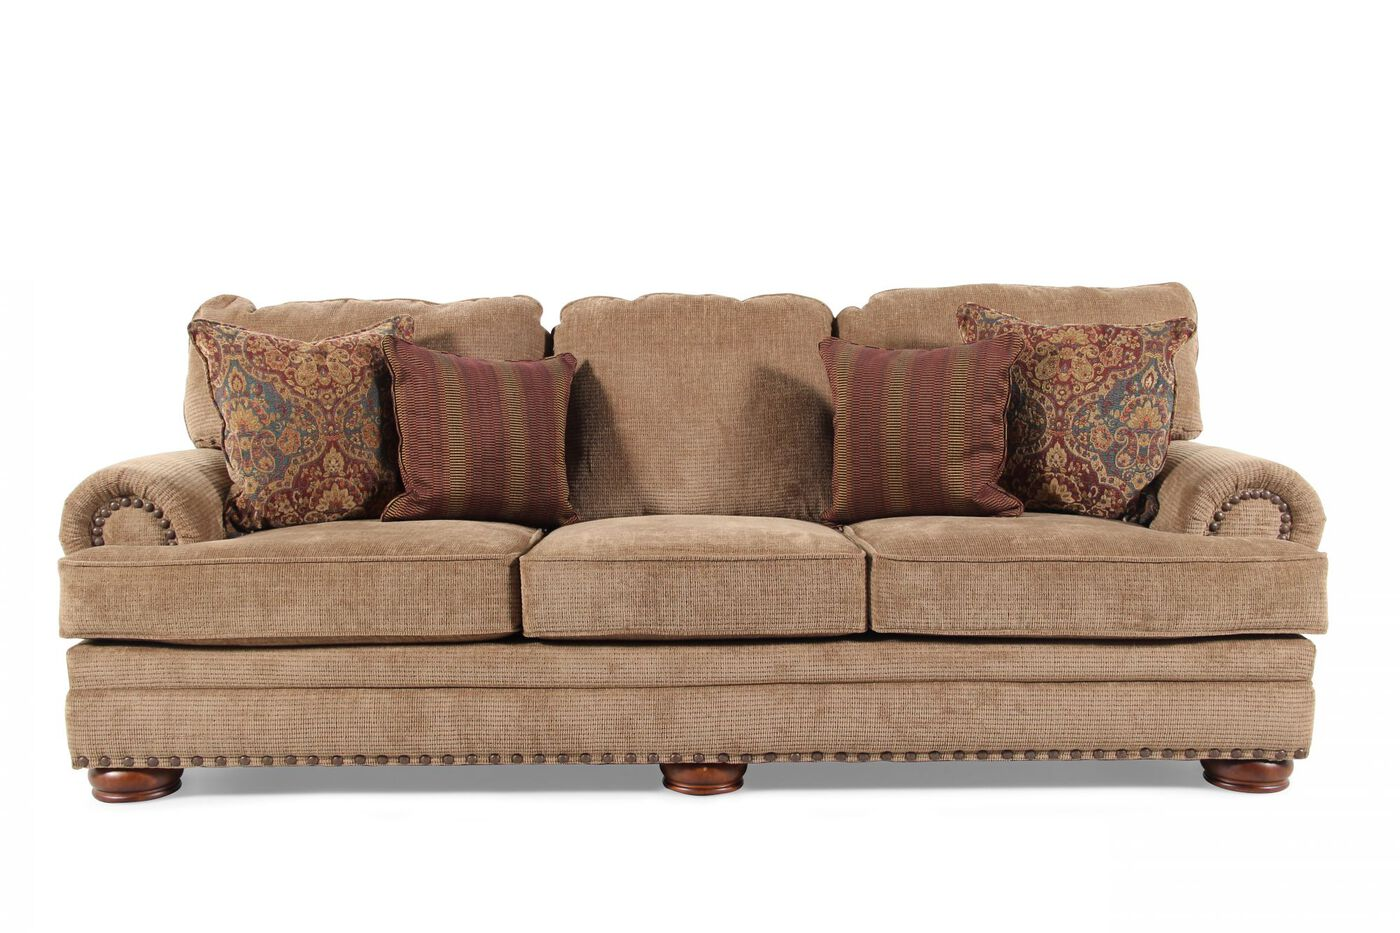 Lane cooper desert sofa mathis brothers furniture for Lane furniture